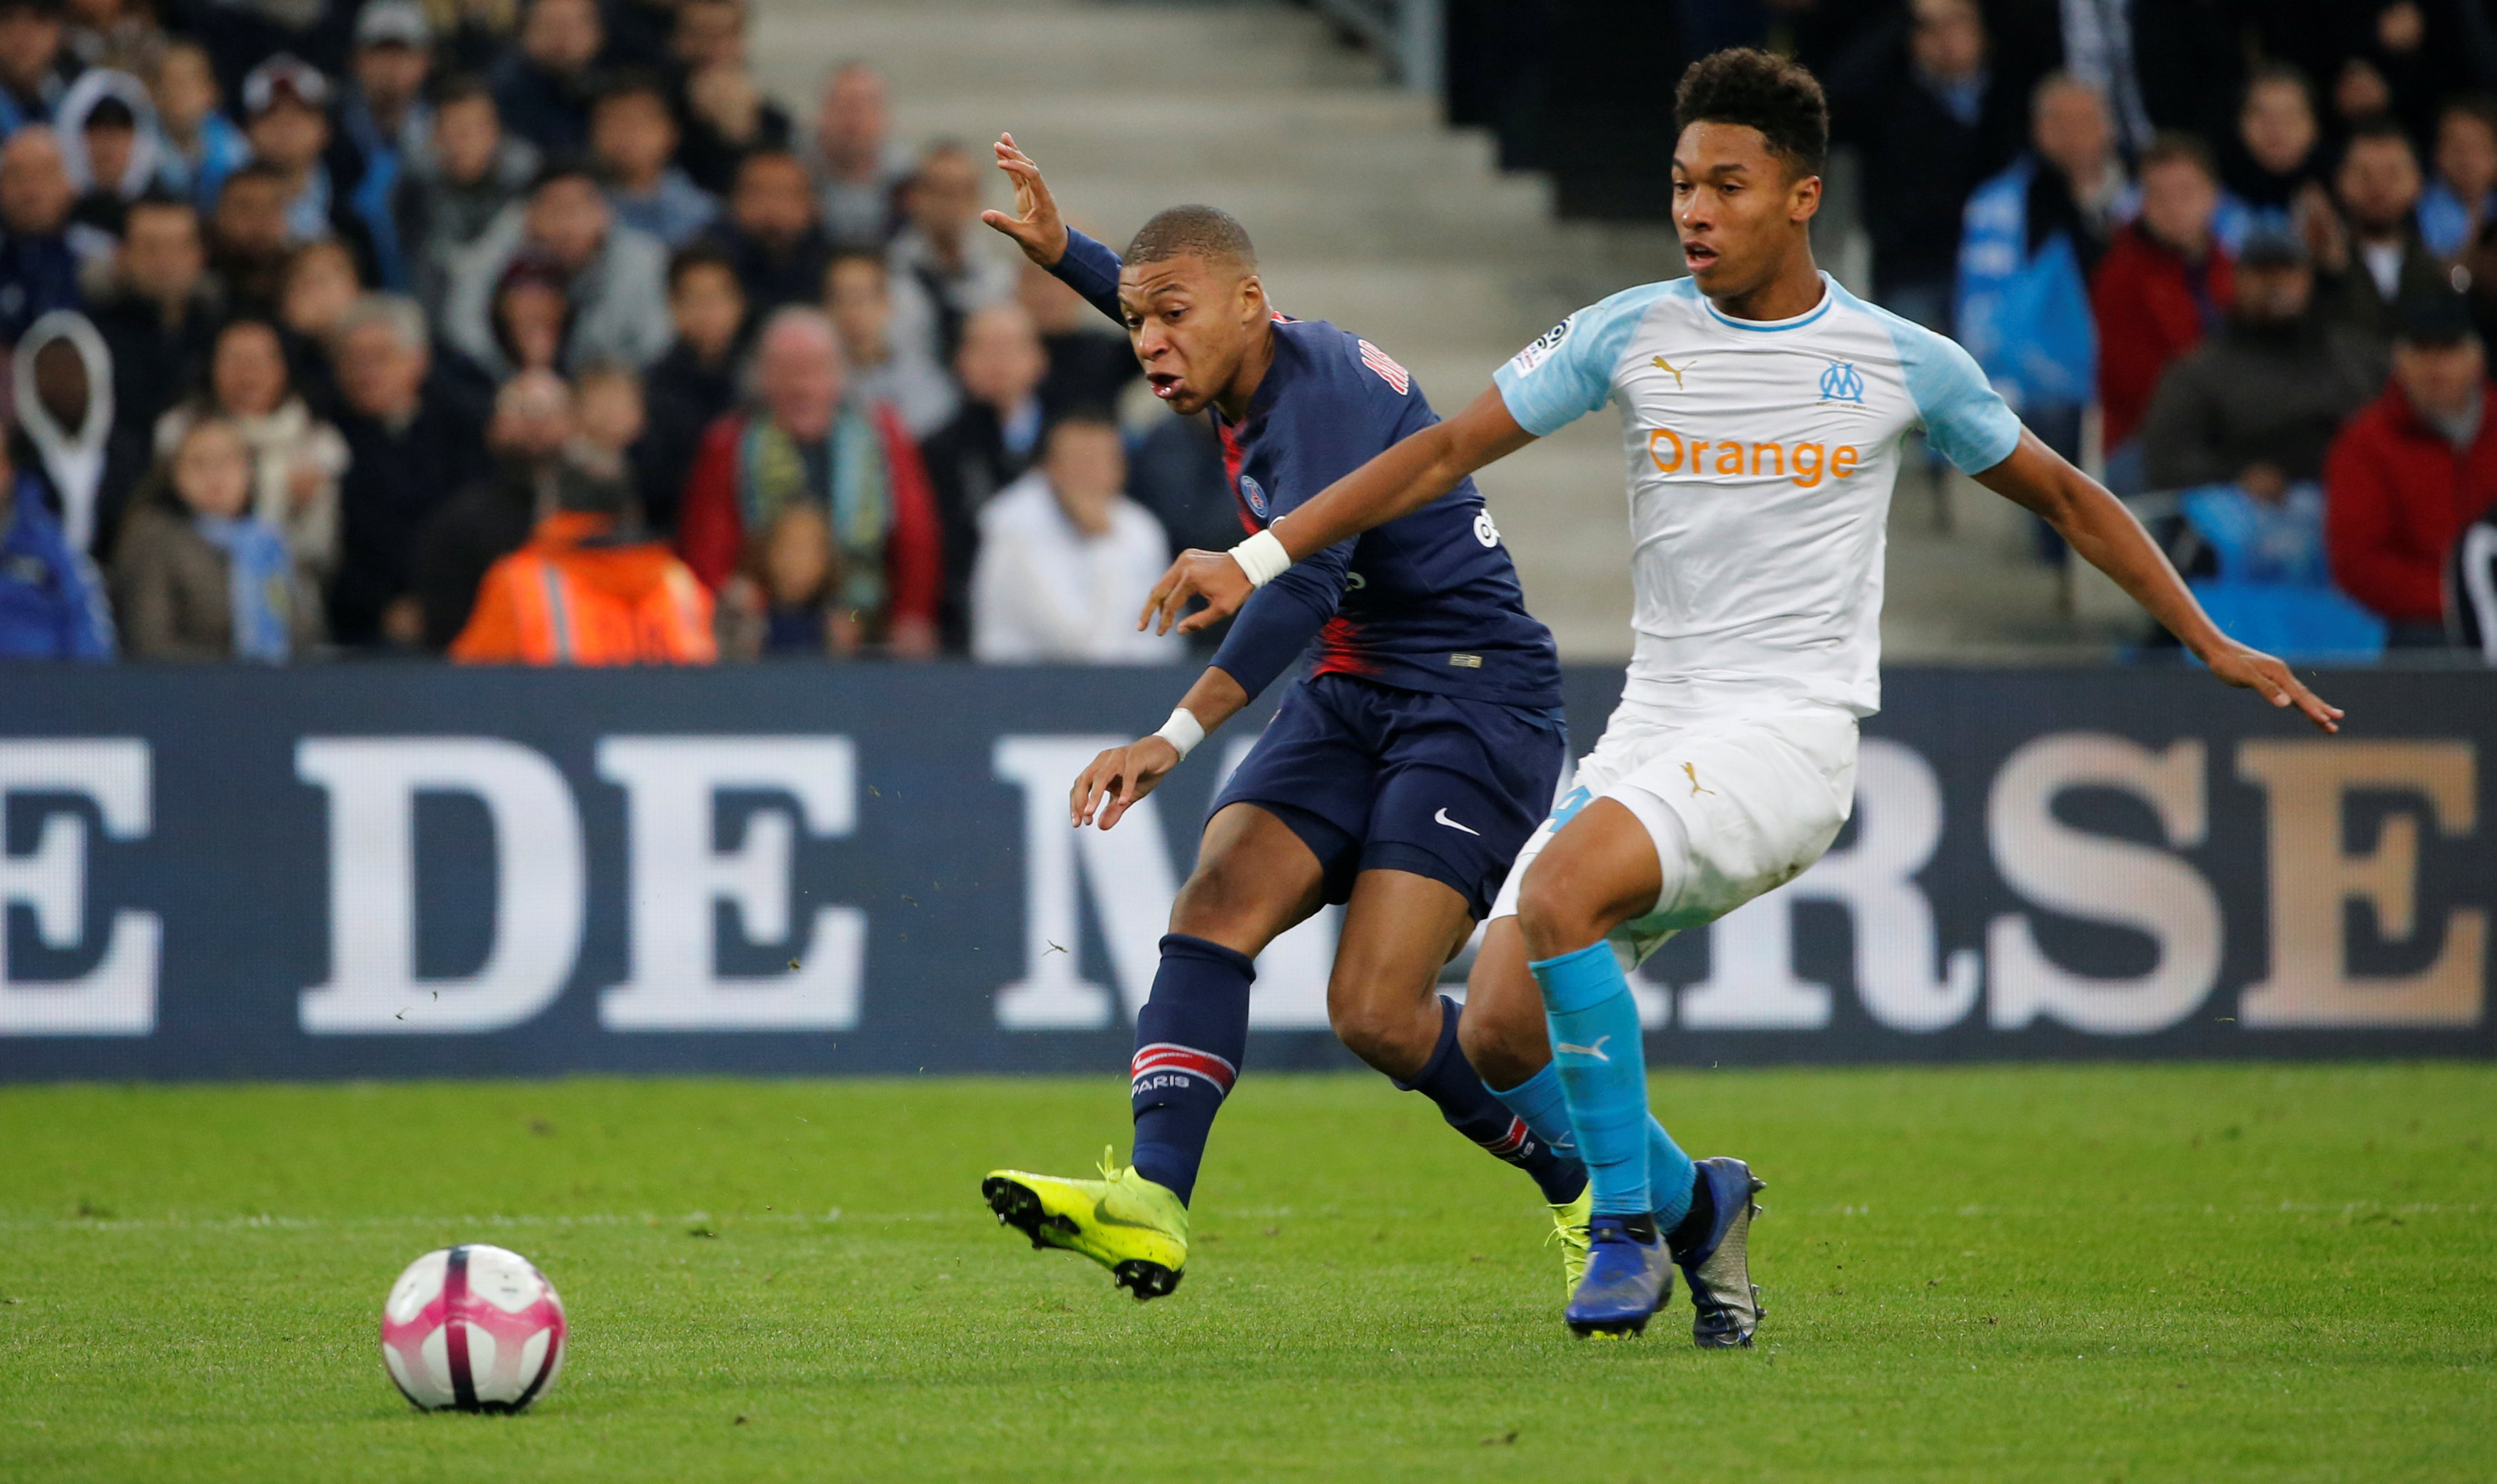 Football: PSG beat Marseille as both coaches sent off